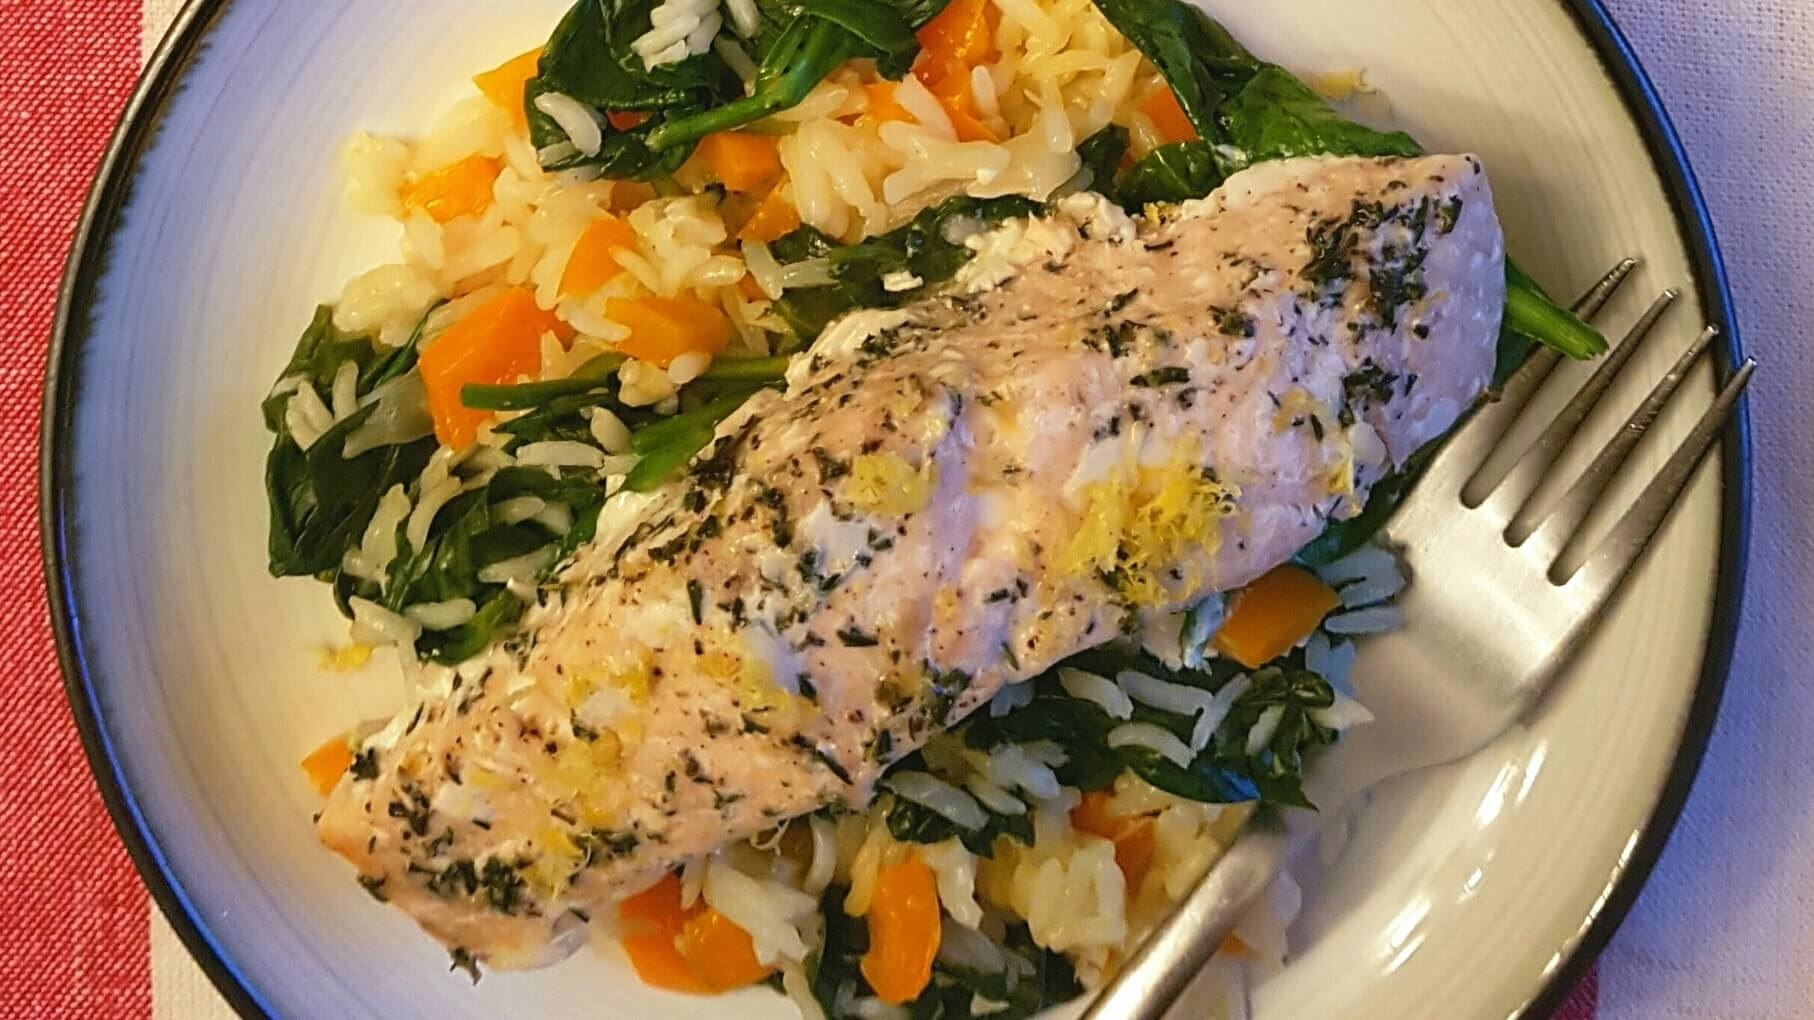 Plate of cooked salmon, spinach, carrots and rice